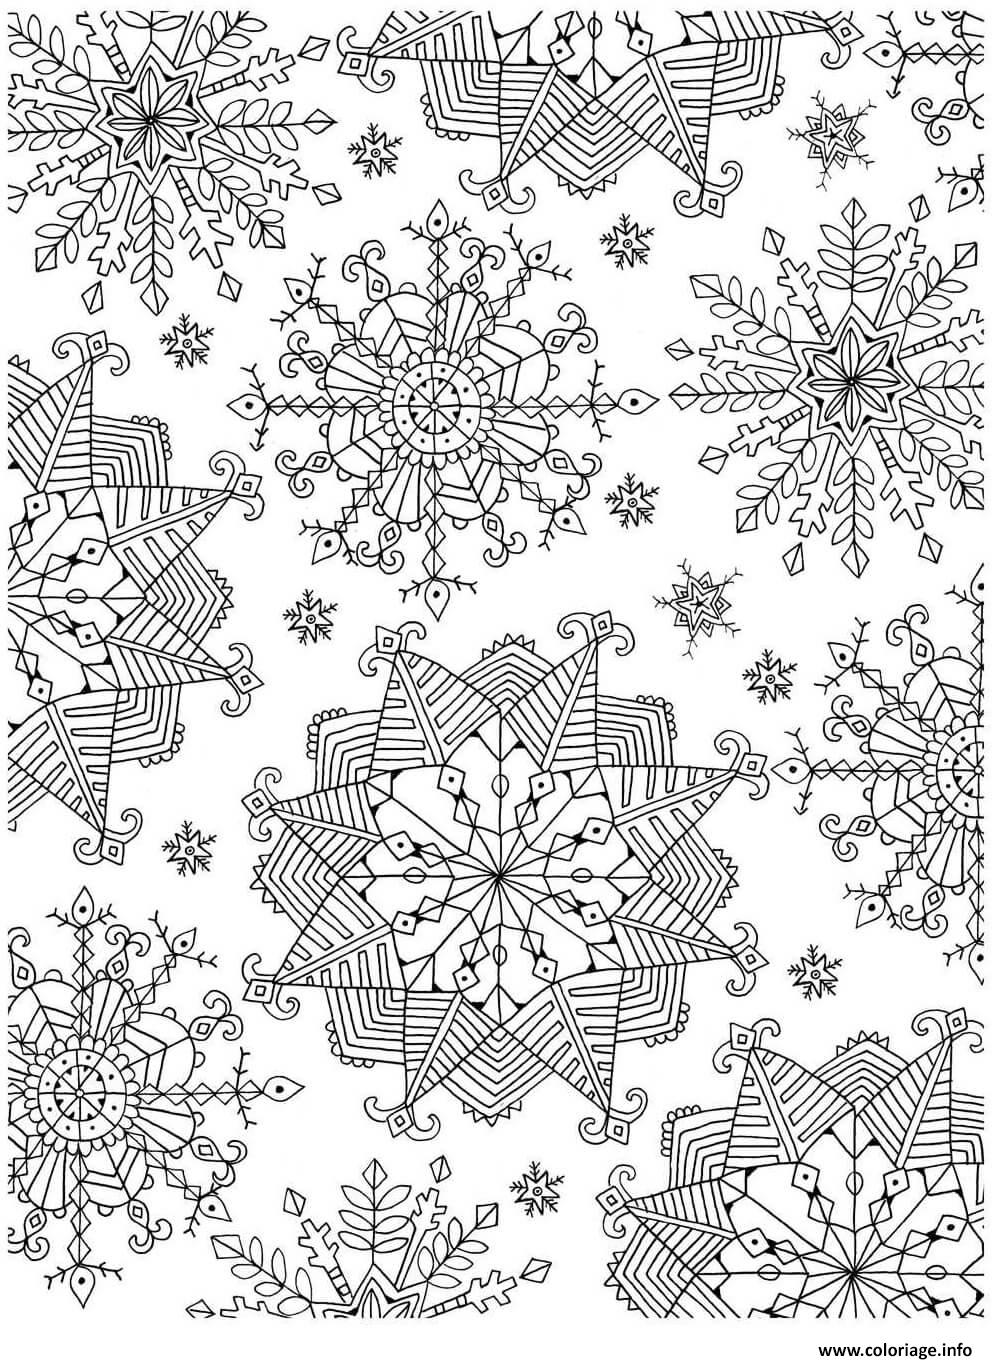 Coloriage flocon de neige adulte noel zentangle - Dessin paysage de noel ...